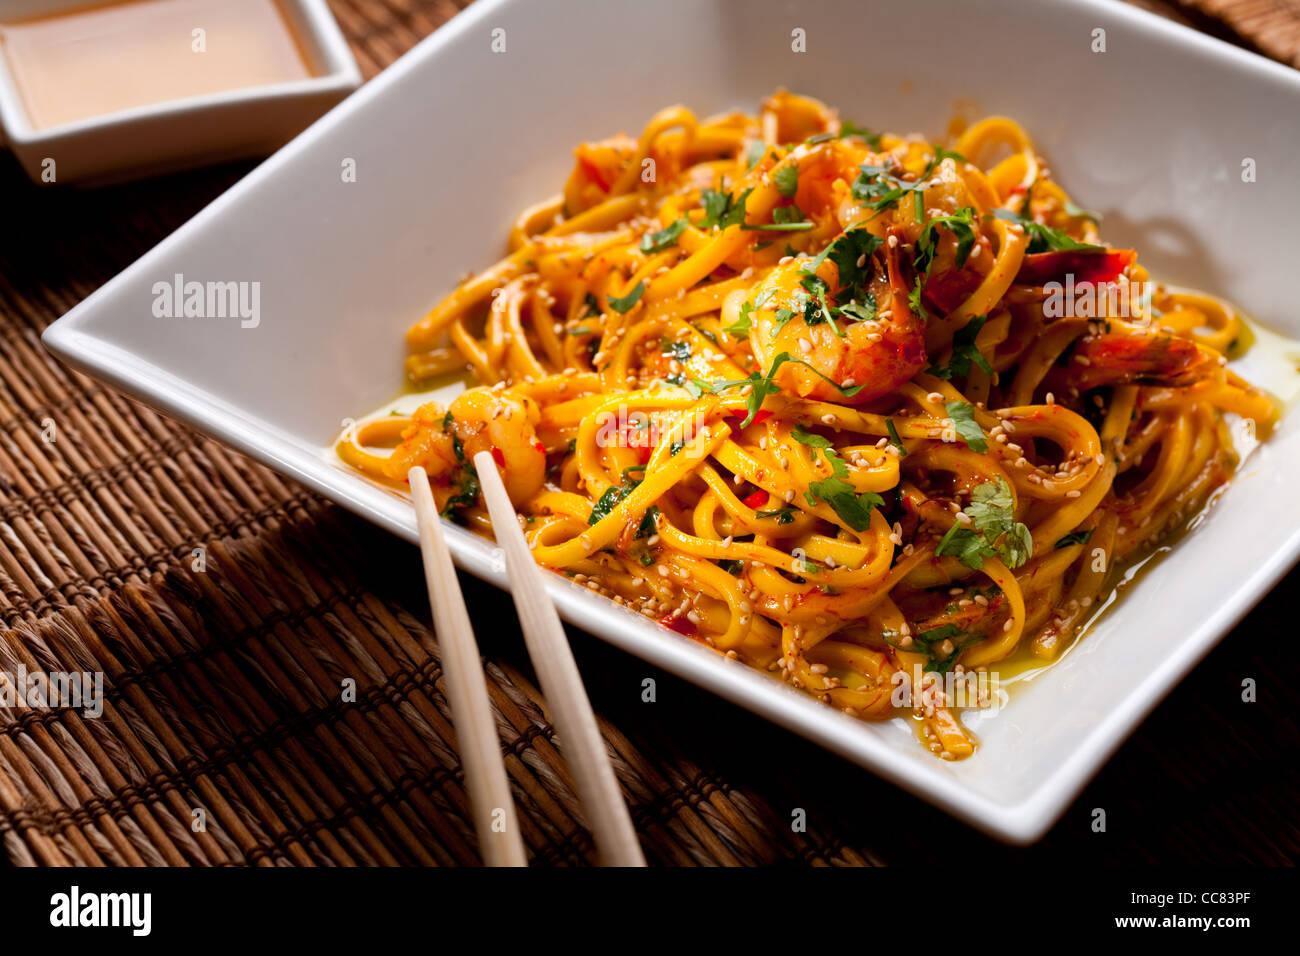 Chinese noodles with shrimps on a bamboo table - Stock Image